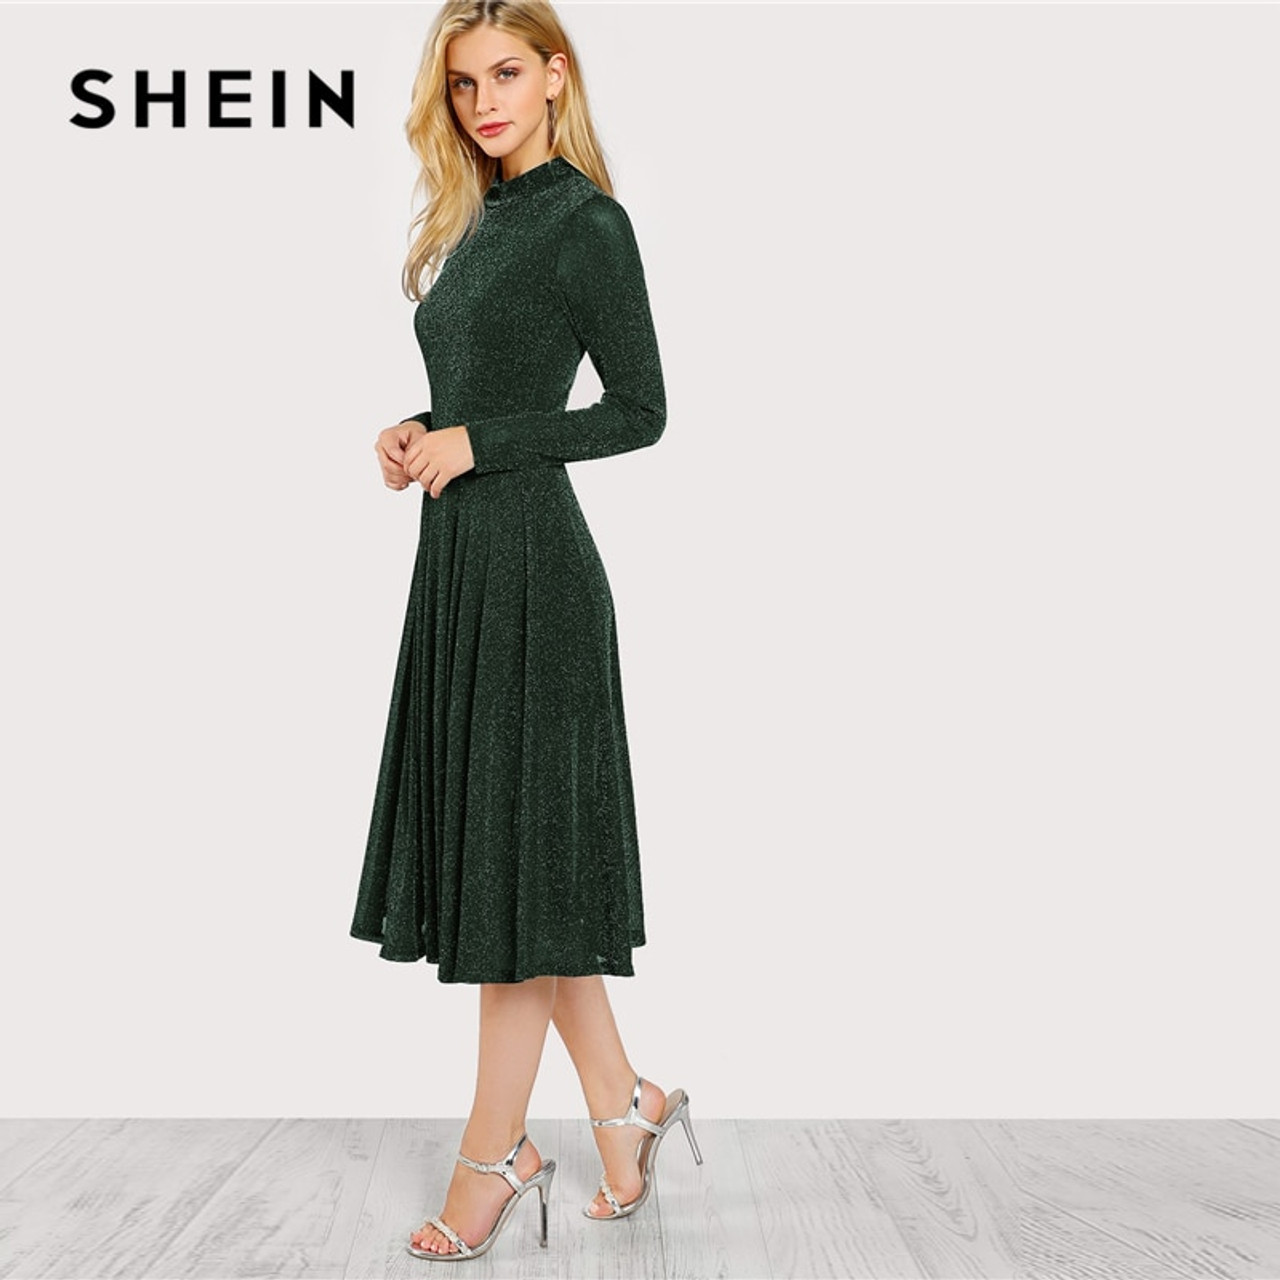 8bd9118529 ... SHEIN Green Elegant Party Mock Neck Glitter Button Fit And Flare Solid  Natural Waist Dress 2018 ...